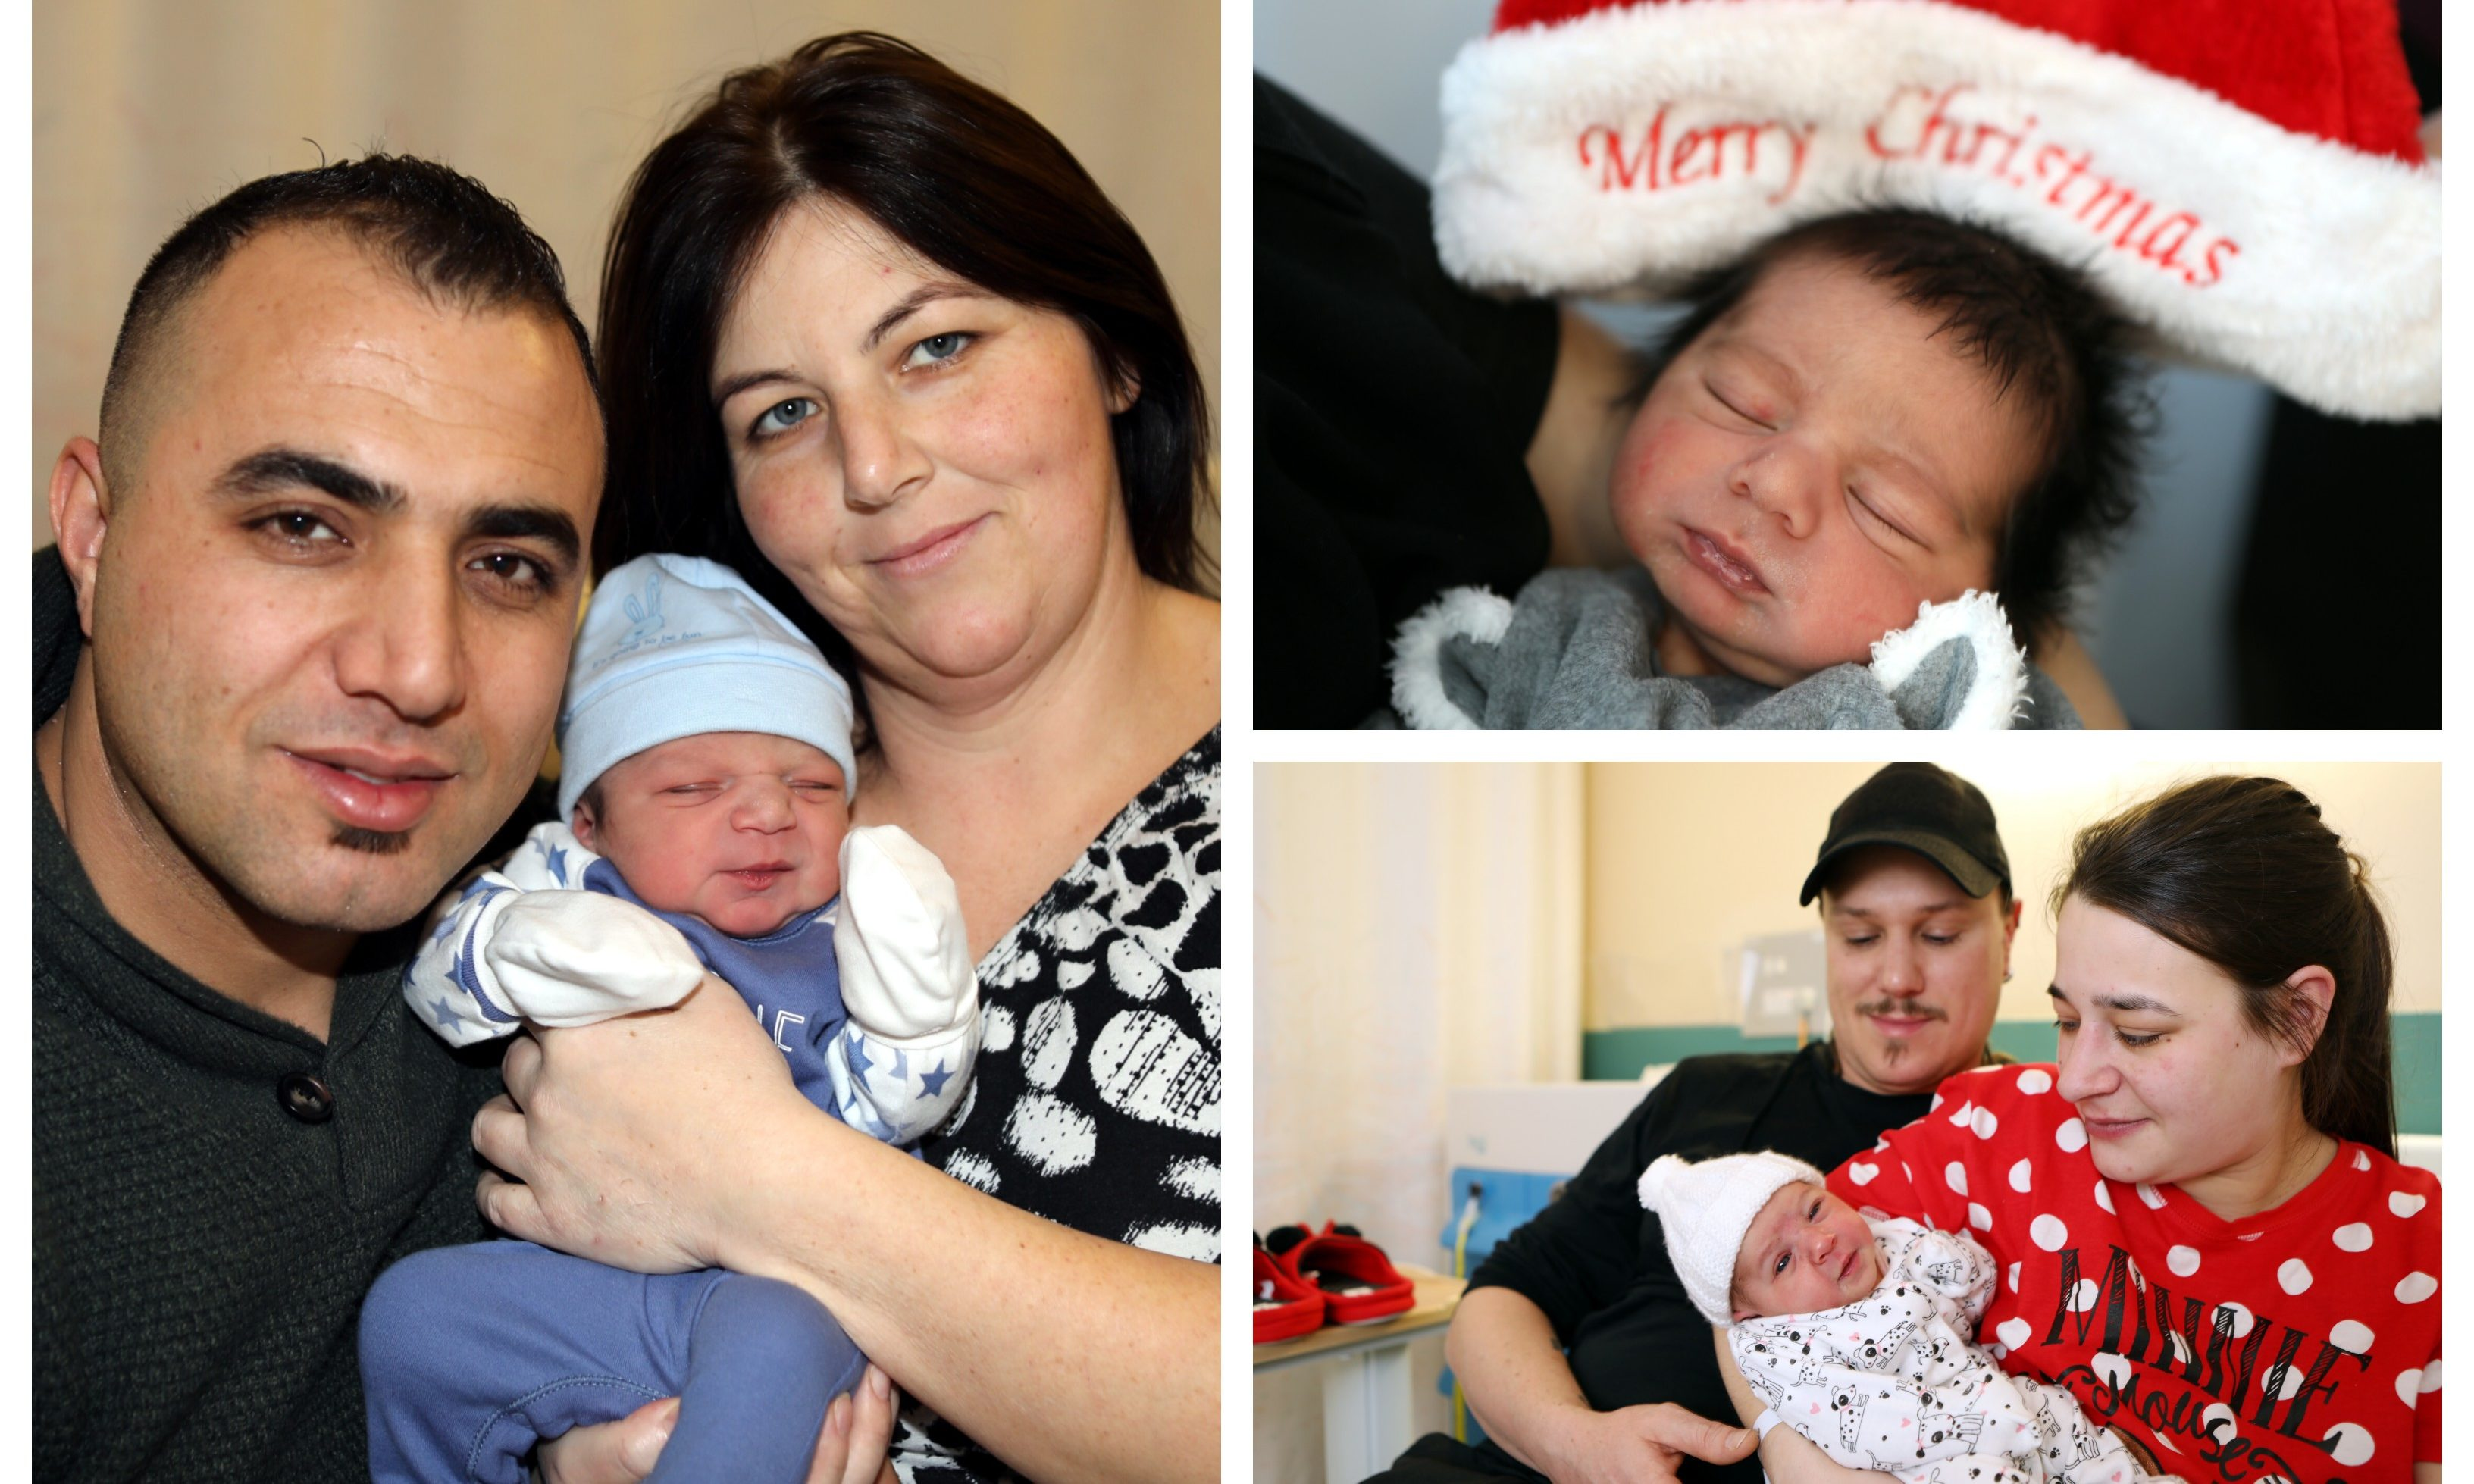 Families in Dundee welcomed the arrival of newborns on Christmas Day.